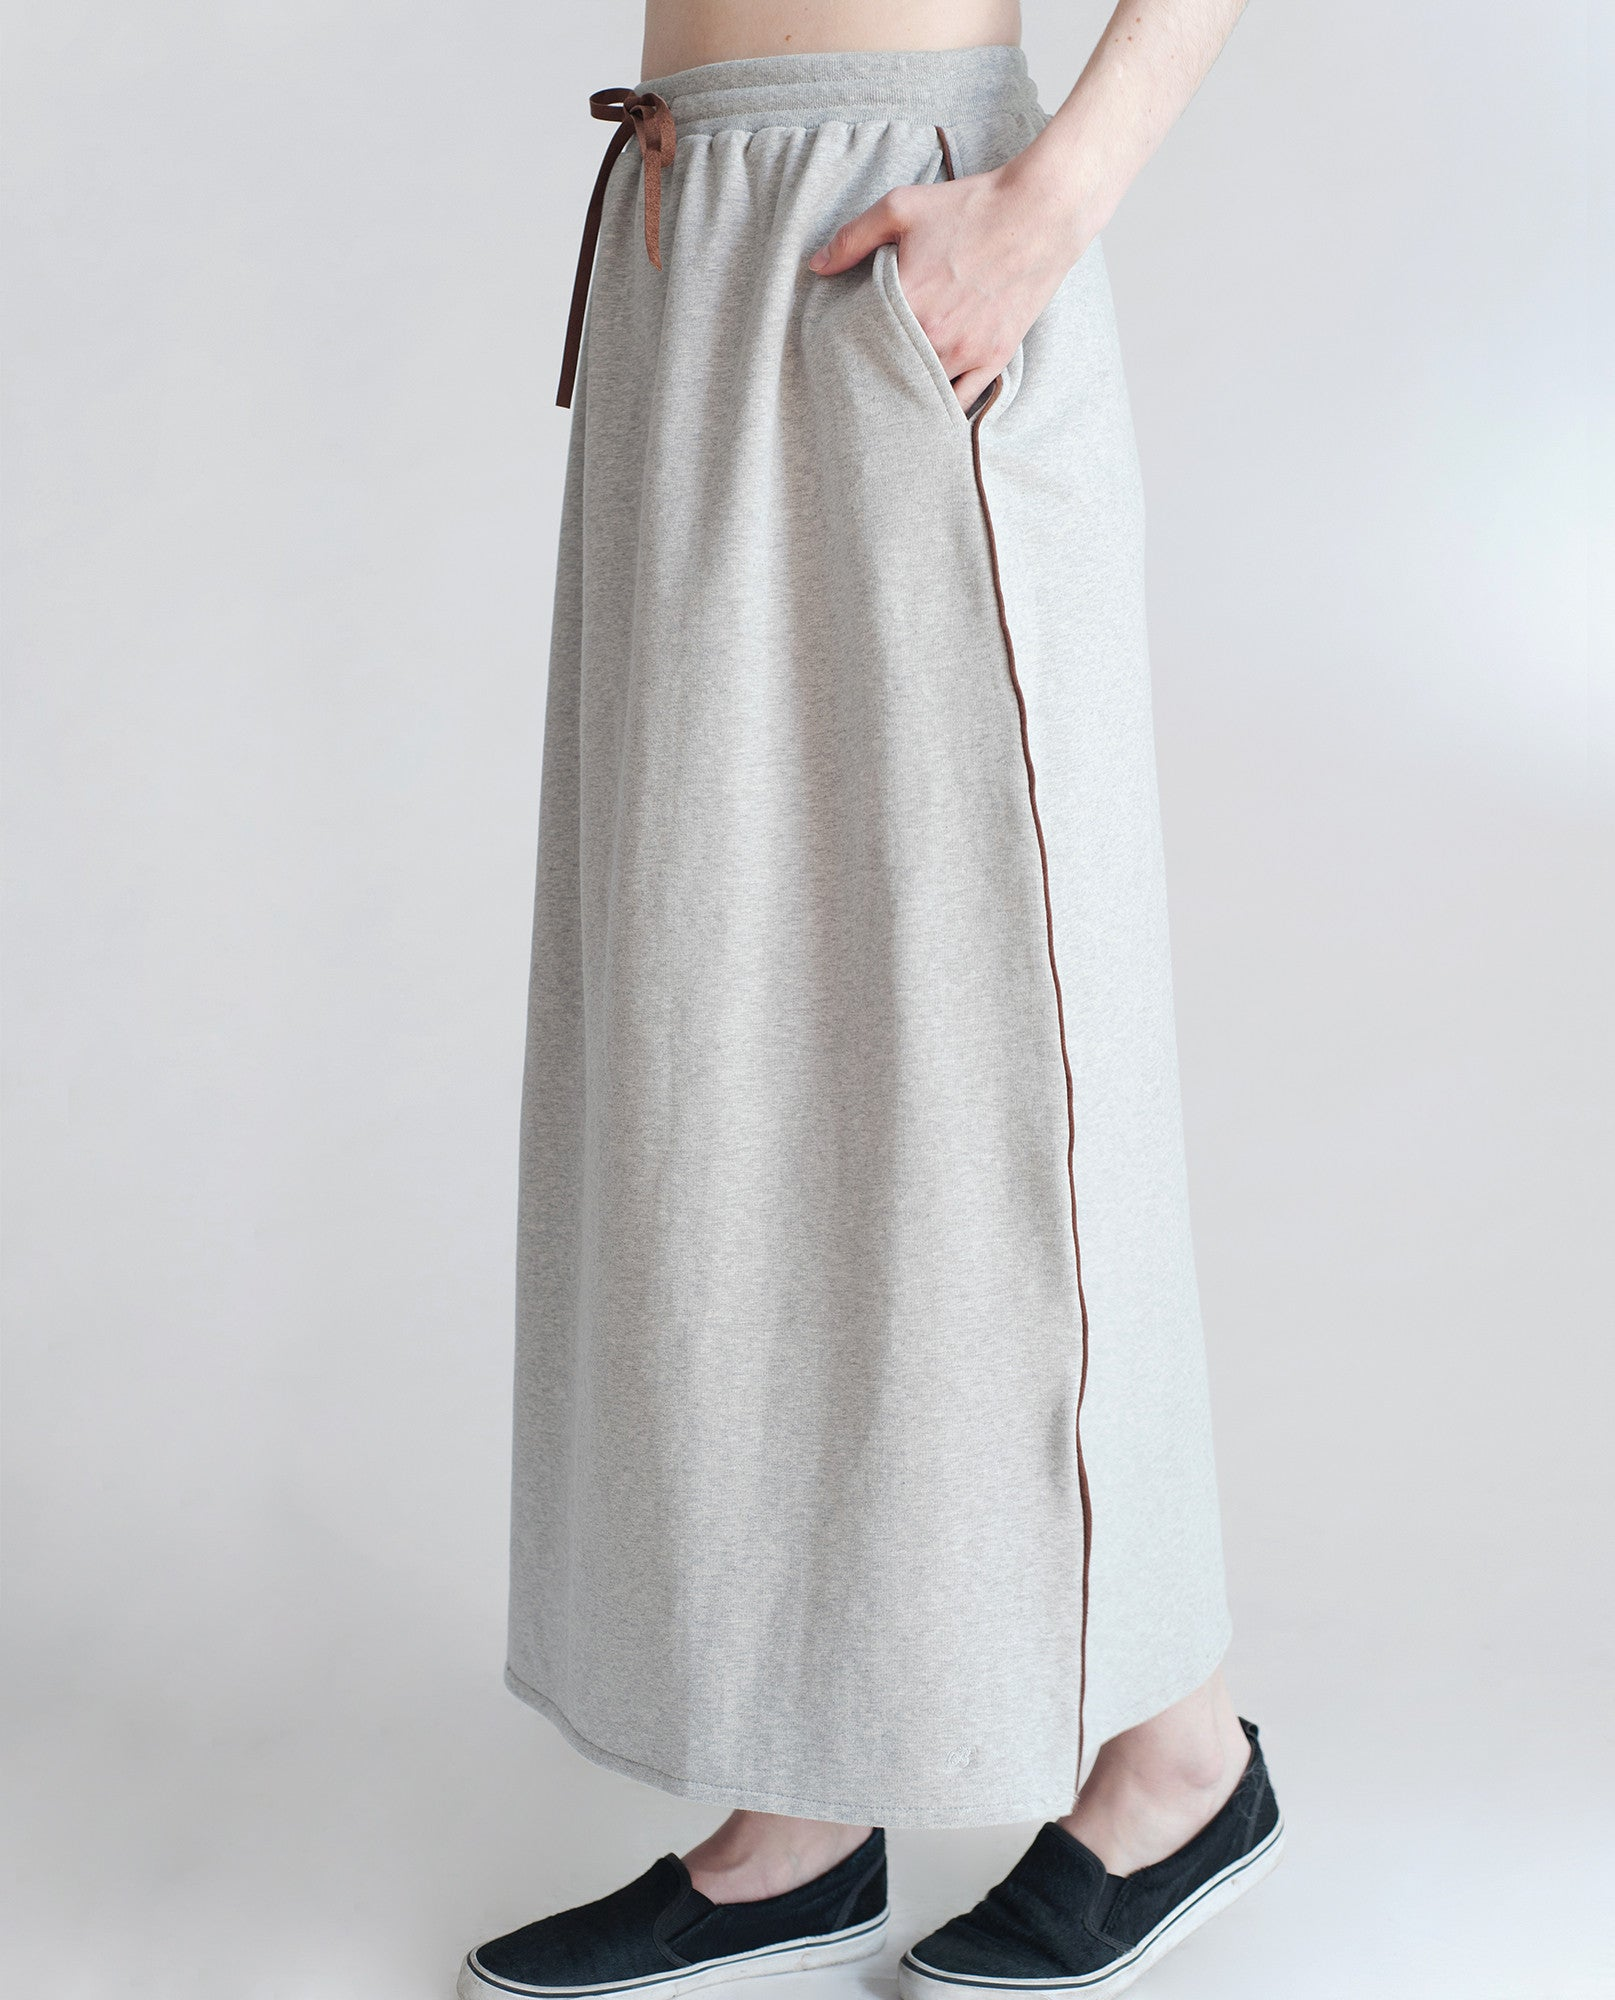 CATTLEYA Organic Cotton Maxi Skirt In Light Grey